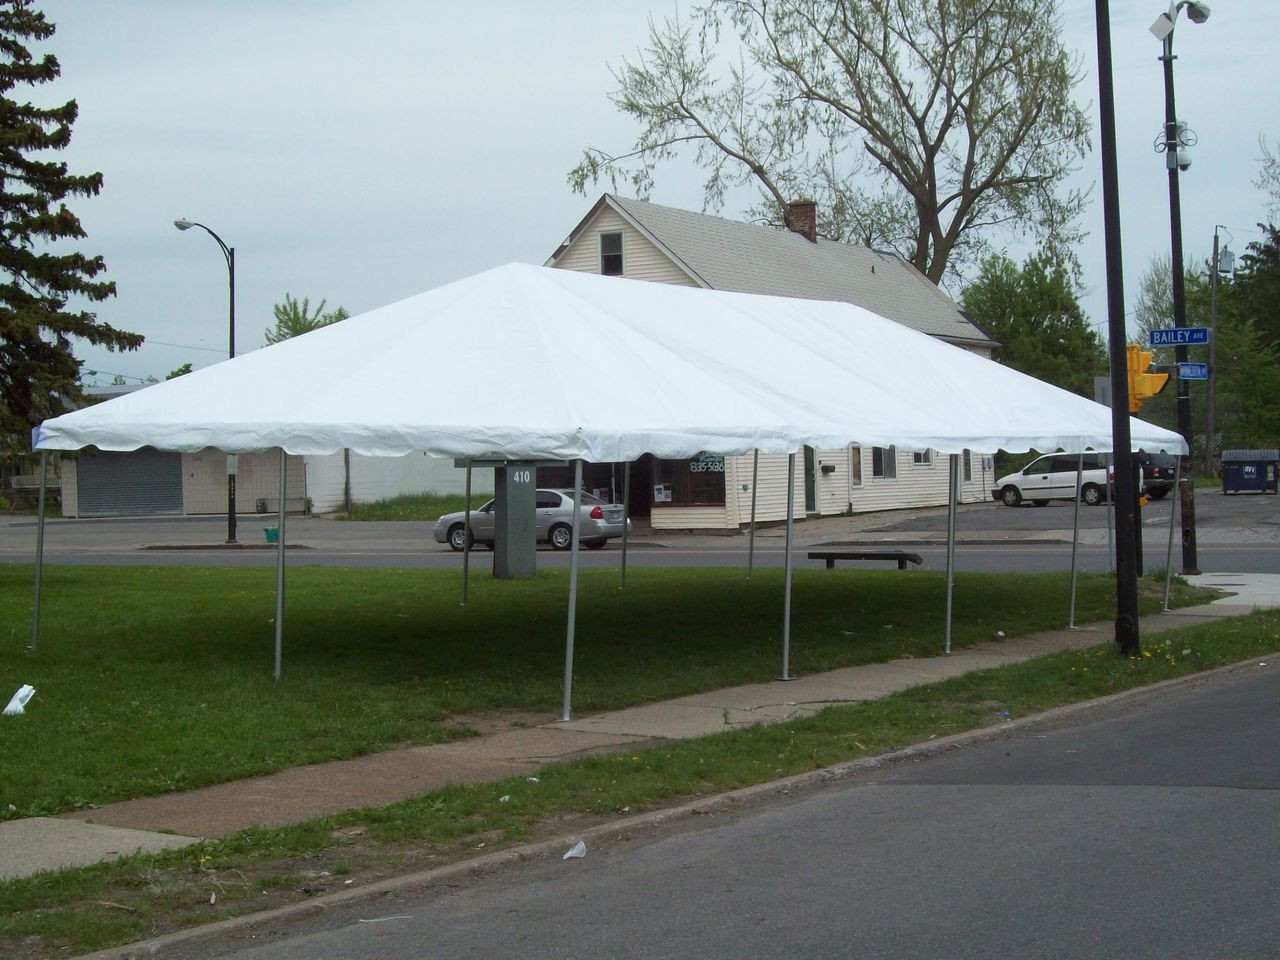 20 x 40 West Coast Frame Canopy Tent Rental Starting At: - ABCWNYrental